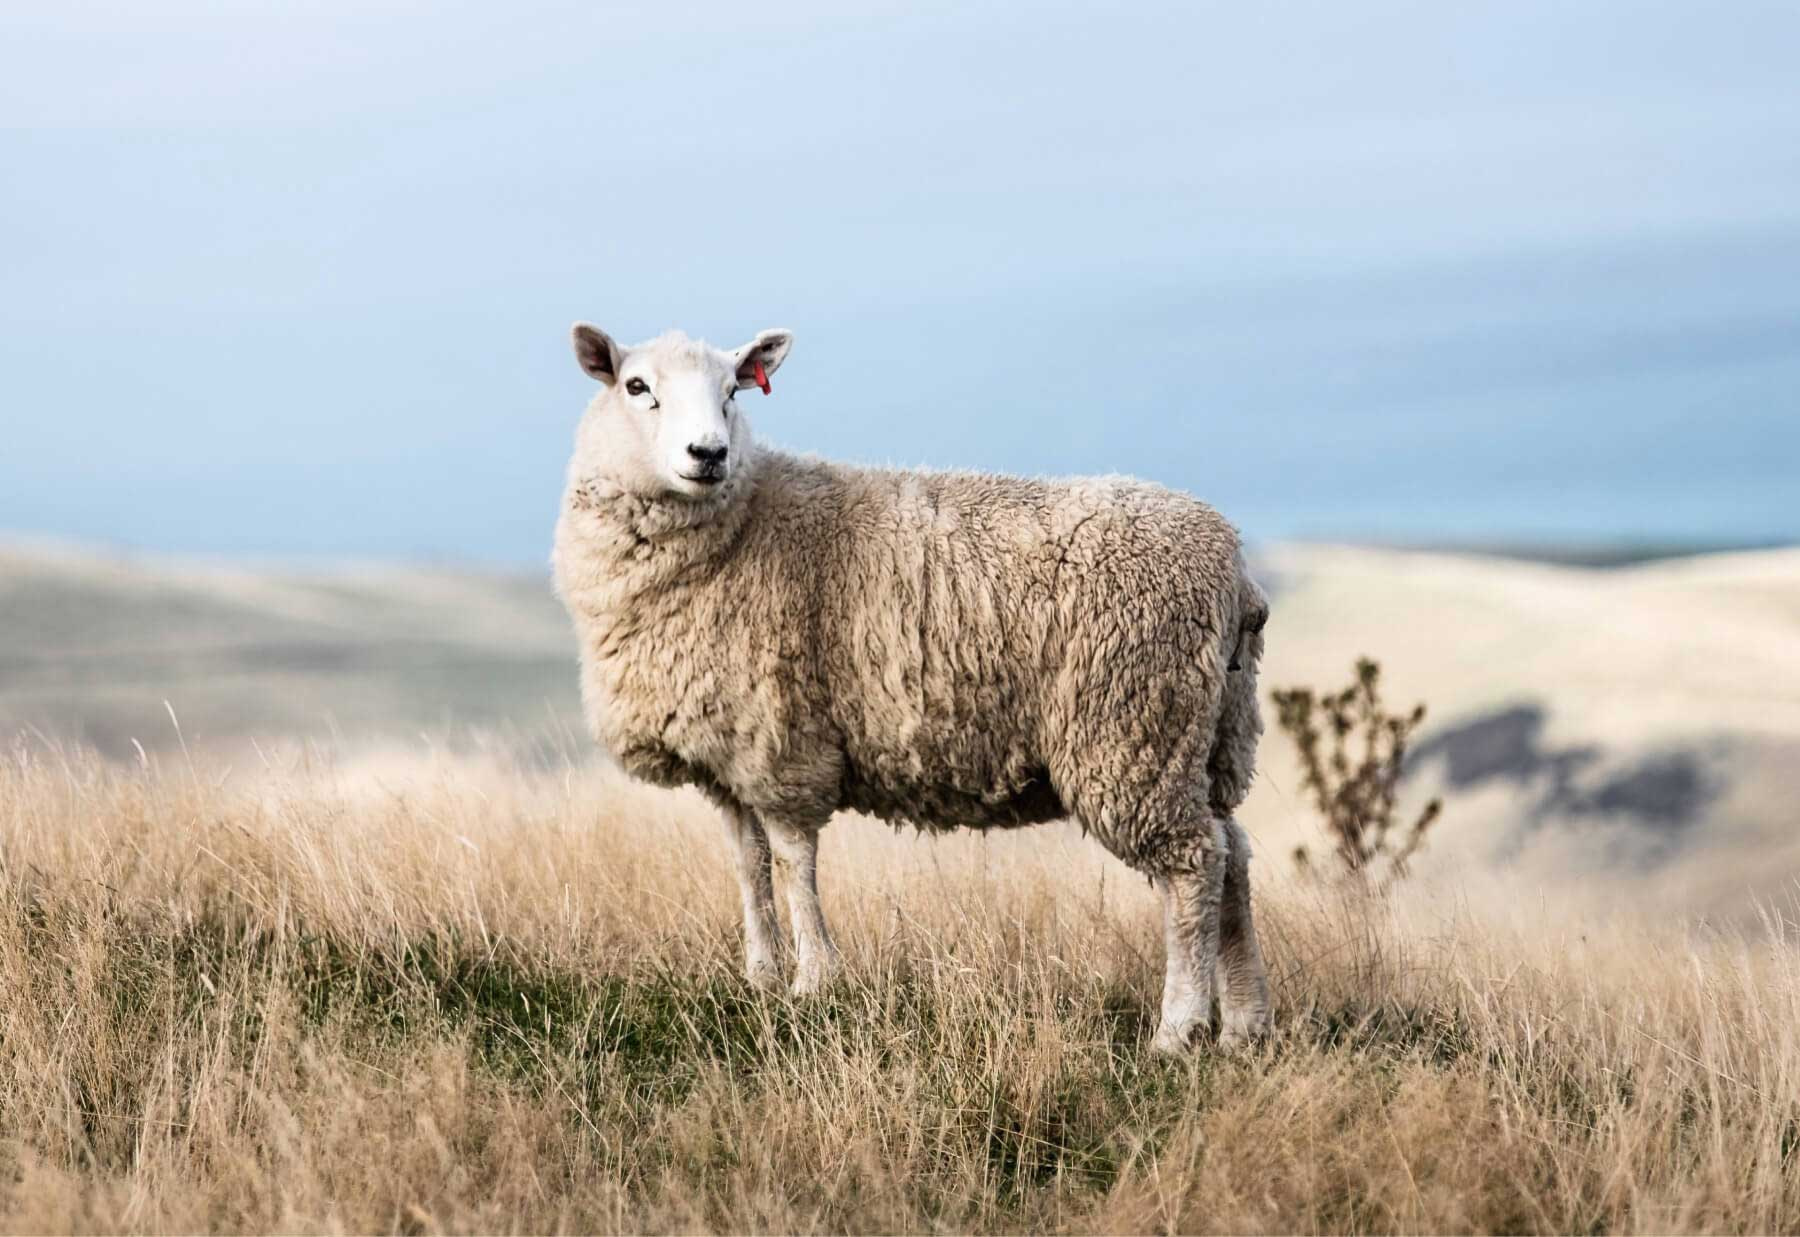 Photo of a sheep in a field